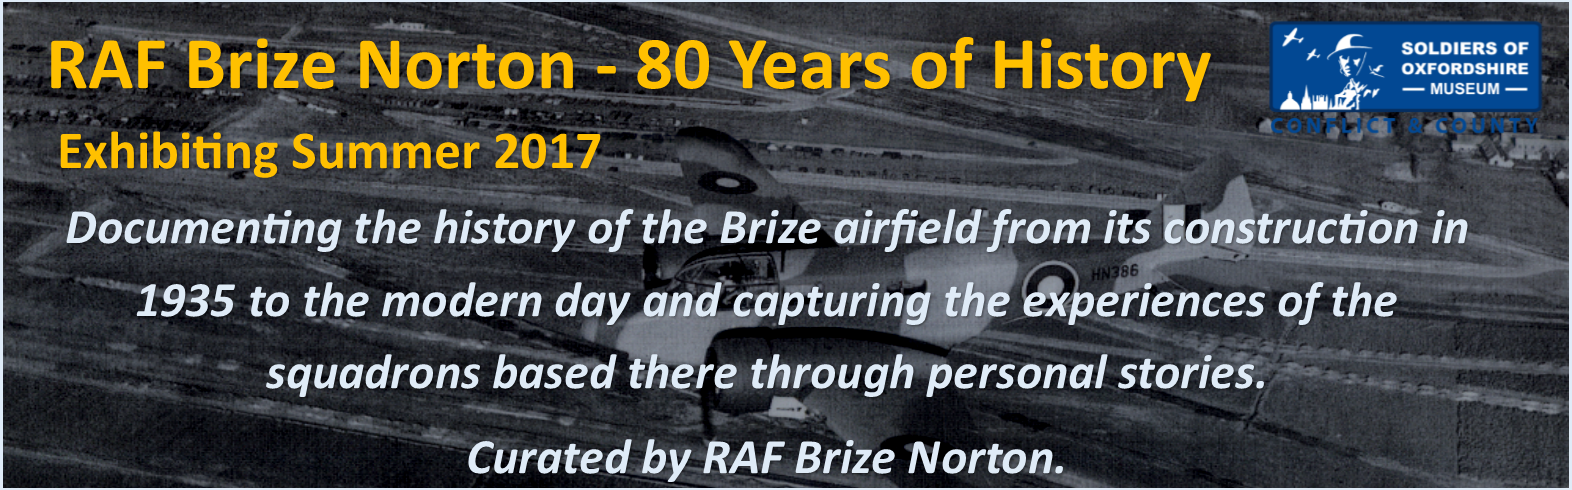 RAF Brize Norton - 80 Years of History